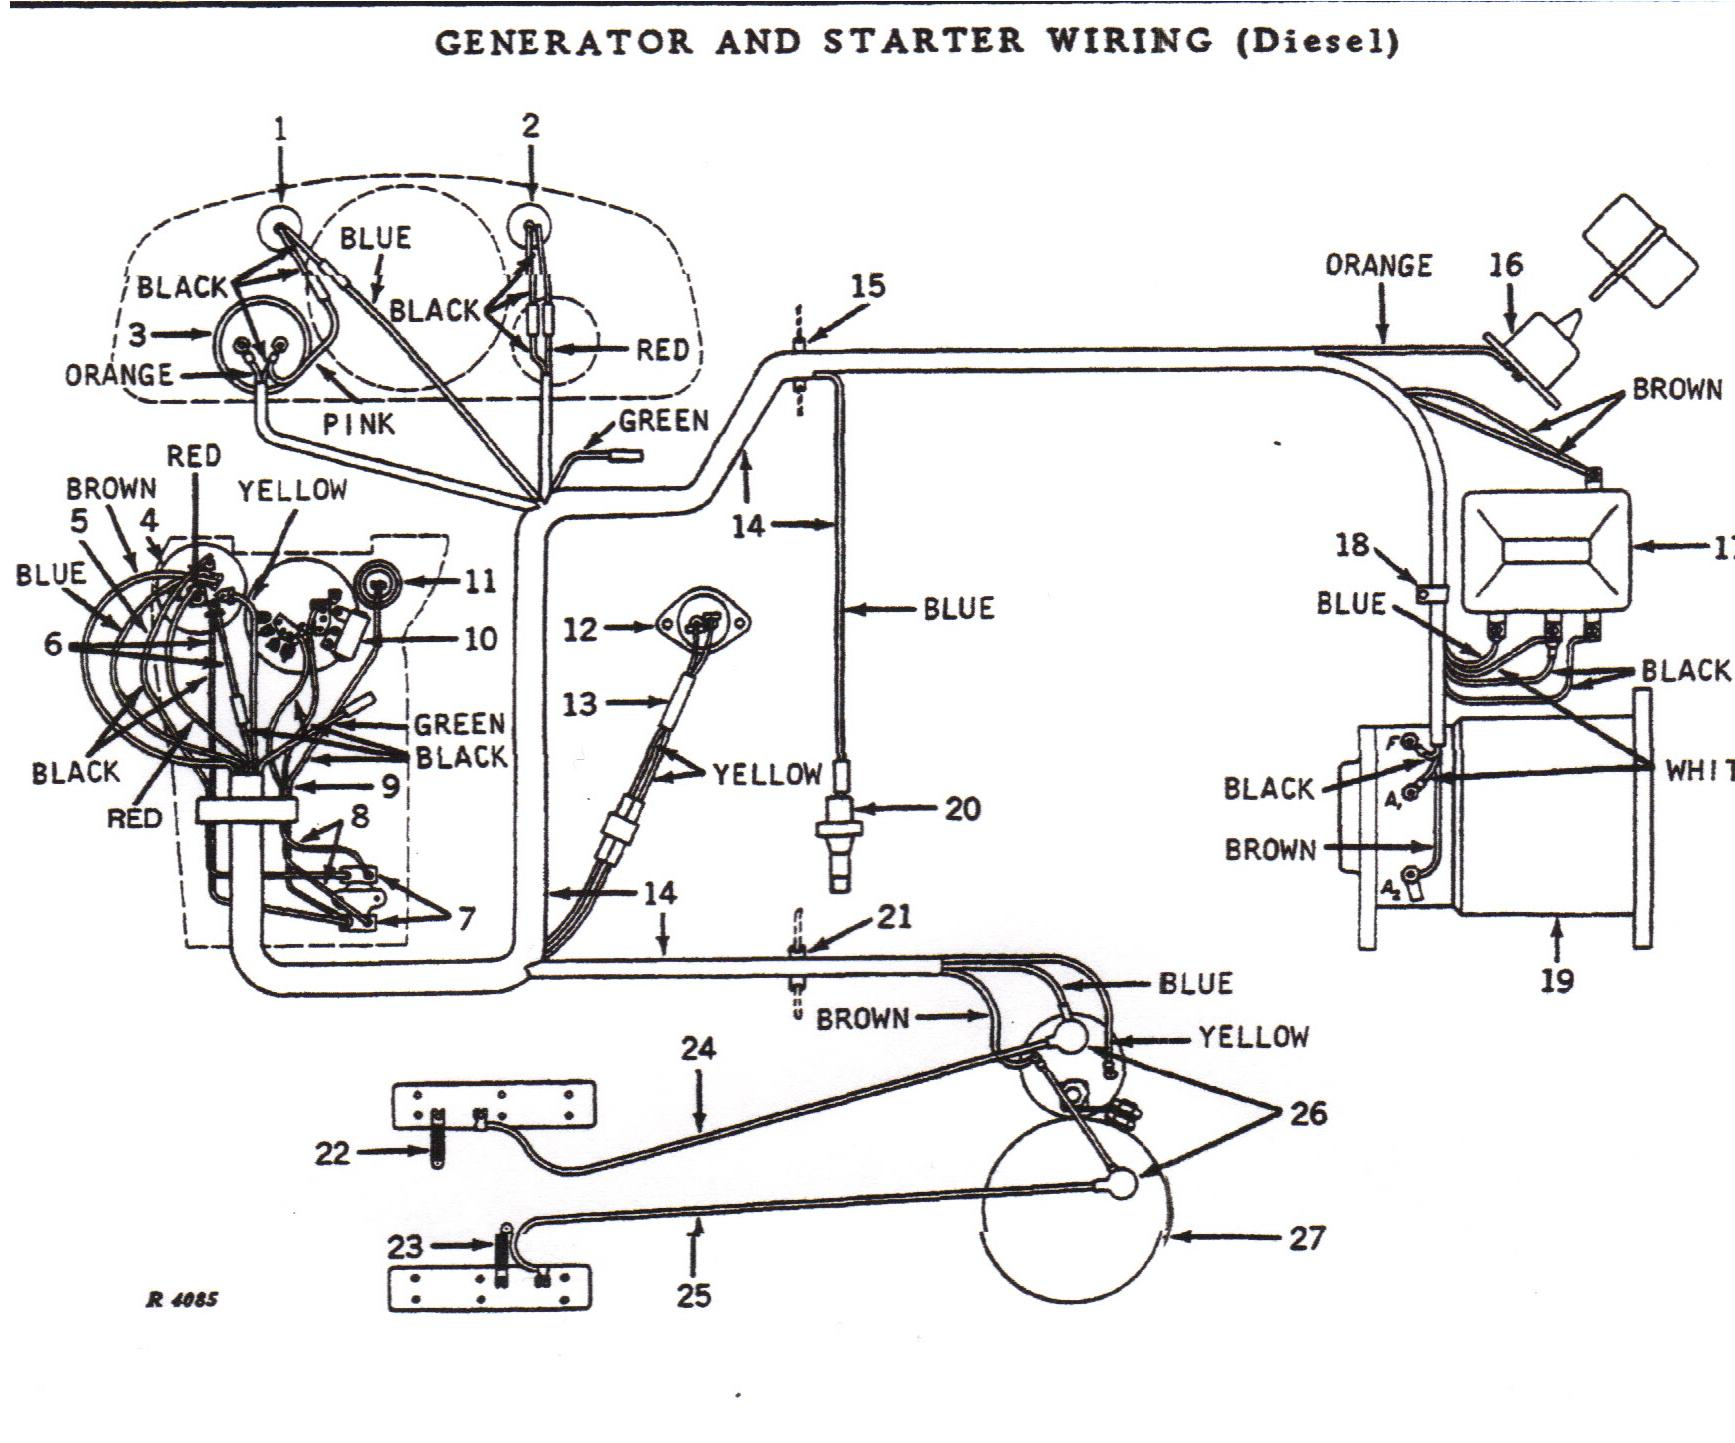 John Deere 160 Lawn Tractor Wiring Diagram together with John Deere Lt133 Wiring Harness together with CH9l 15426 in addition 73hmp 345 Re John Deere 345 Lawn Garden Tractor Pto Will furthermore ZM9k 11729. on john deere 950 tractor wiring harness